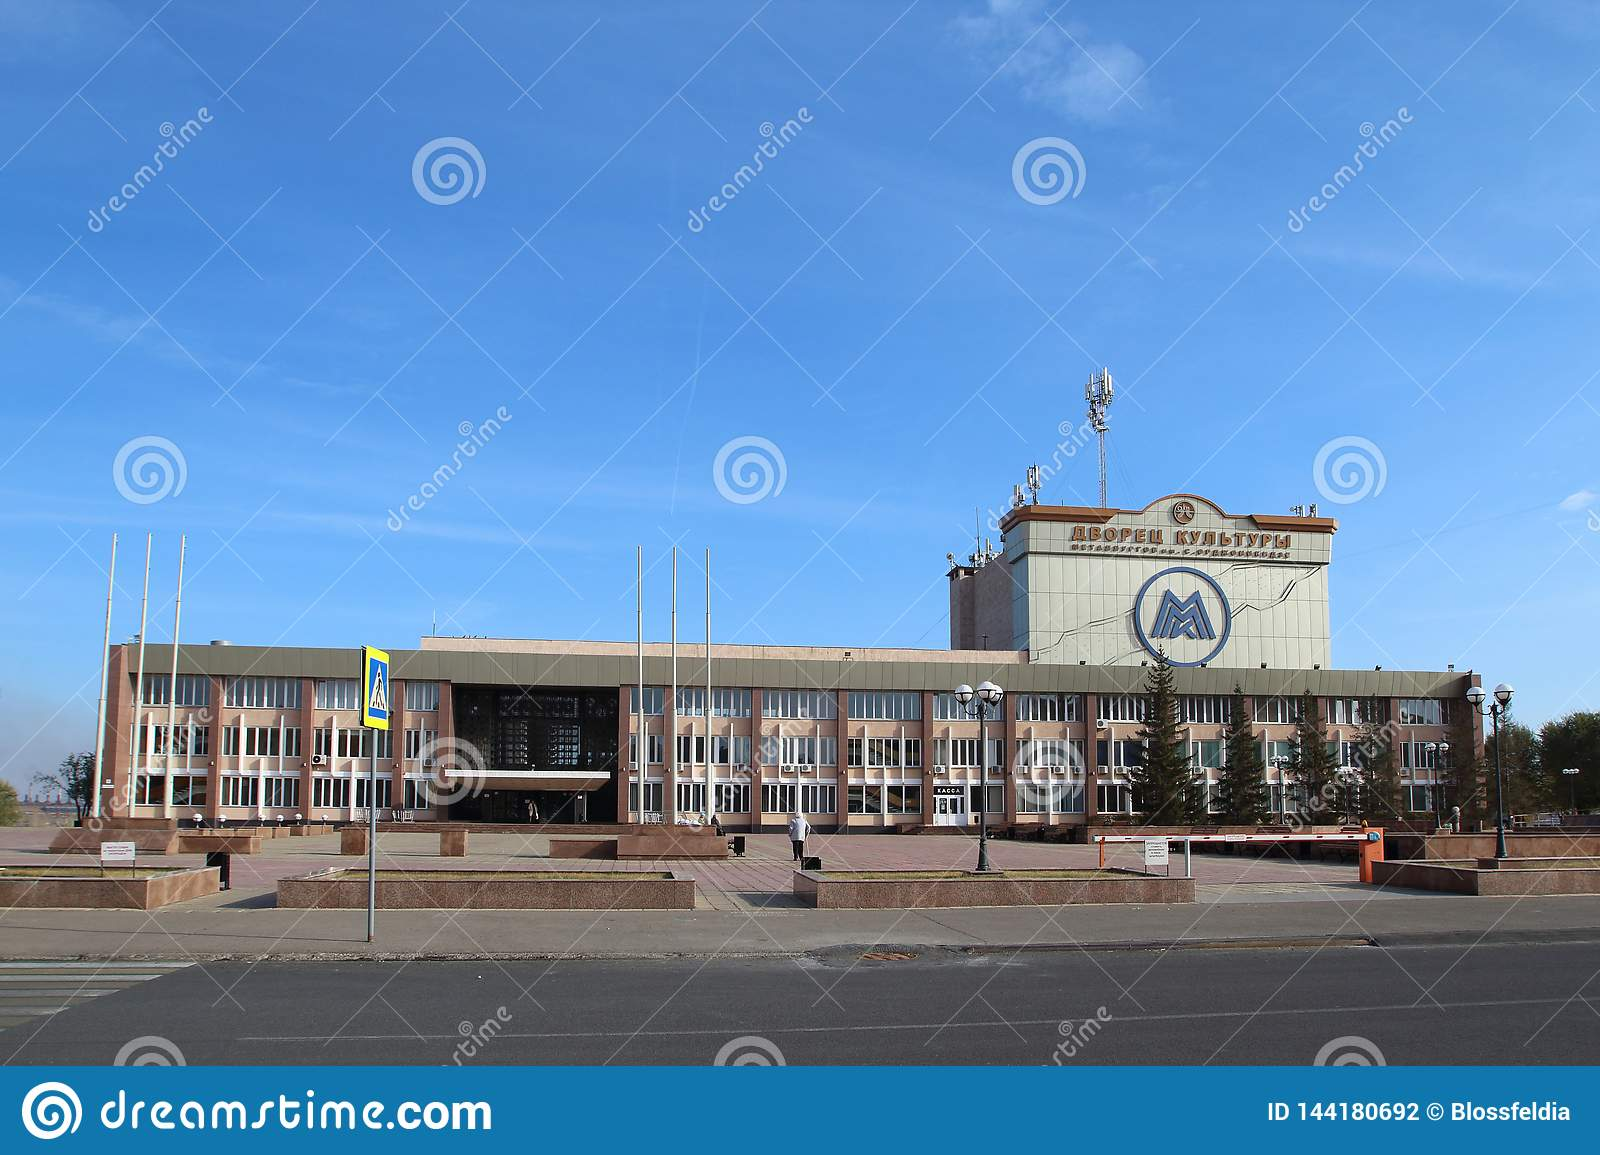 Palace of Culture of Metallurgists named after Sergo Ordzhonikidze, Magnitogorsk City, Russia